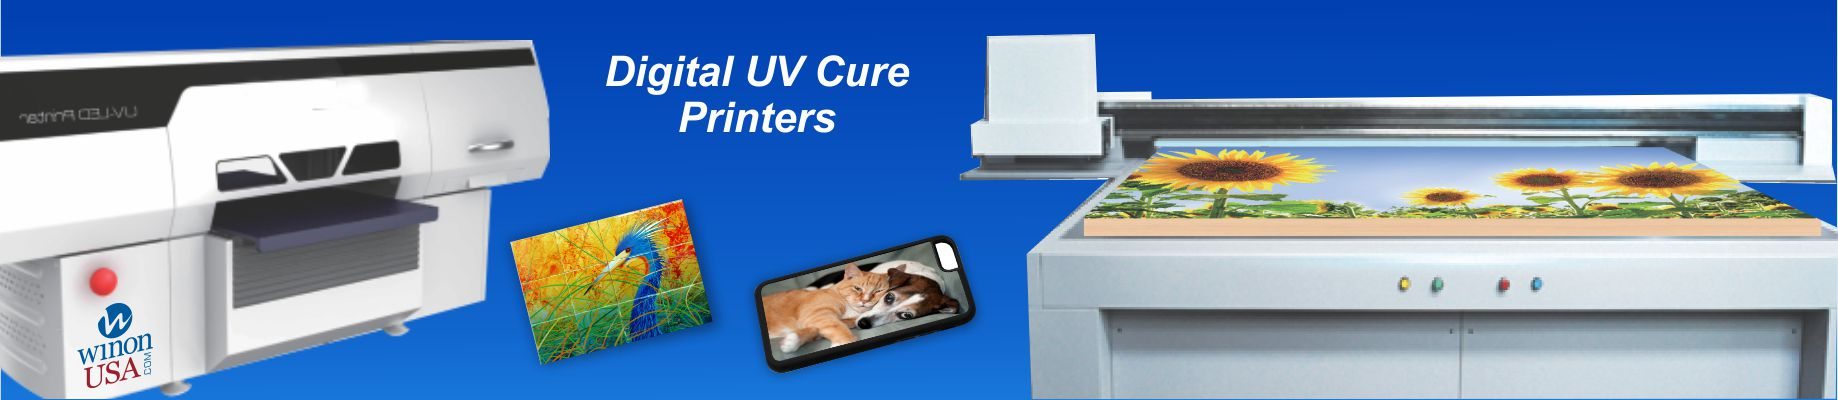 Digital UV Cure Printers